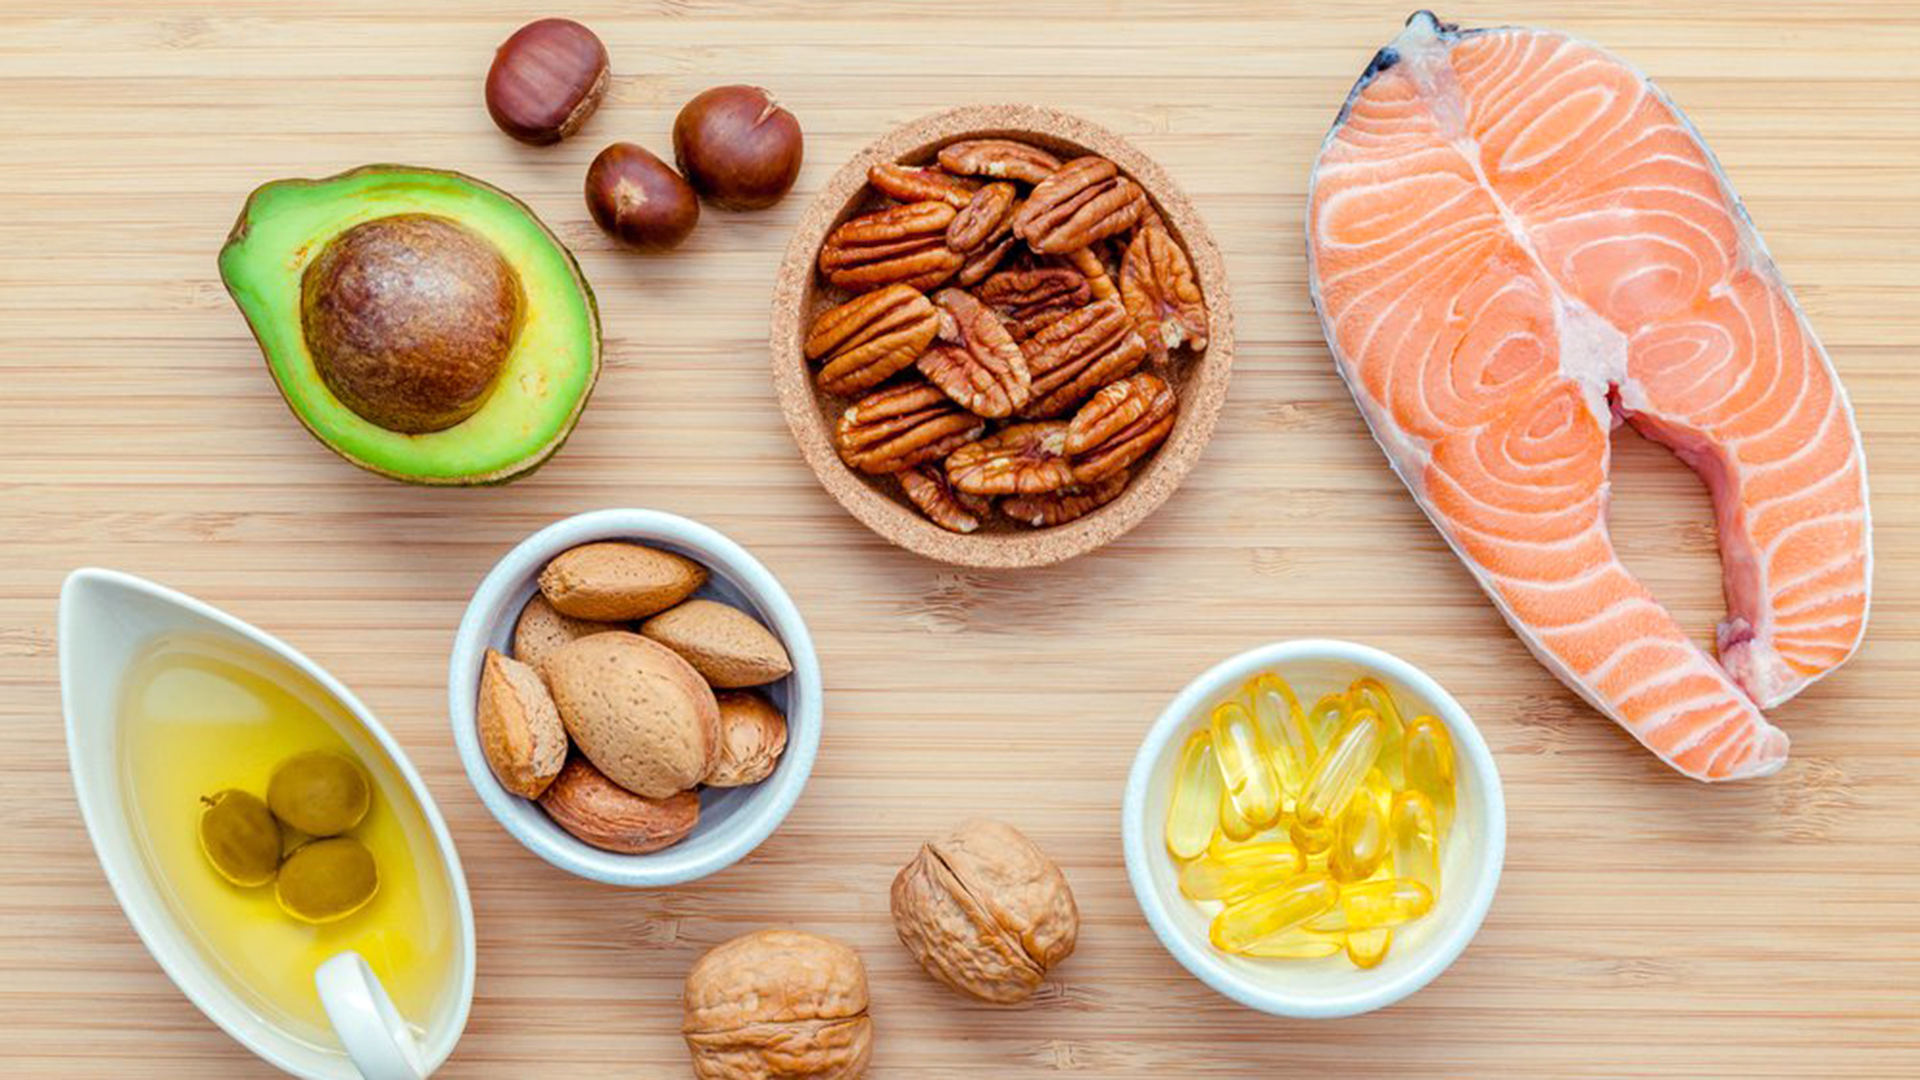 Best Foods And Healthy Fats To Cut Diabetes Risk